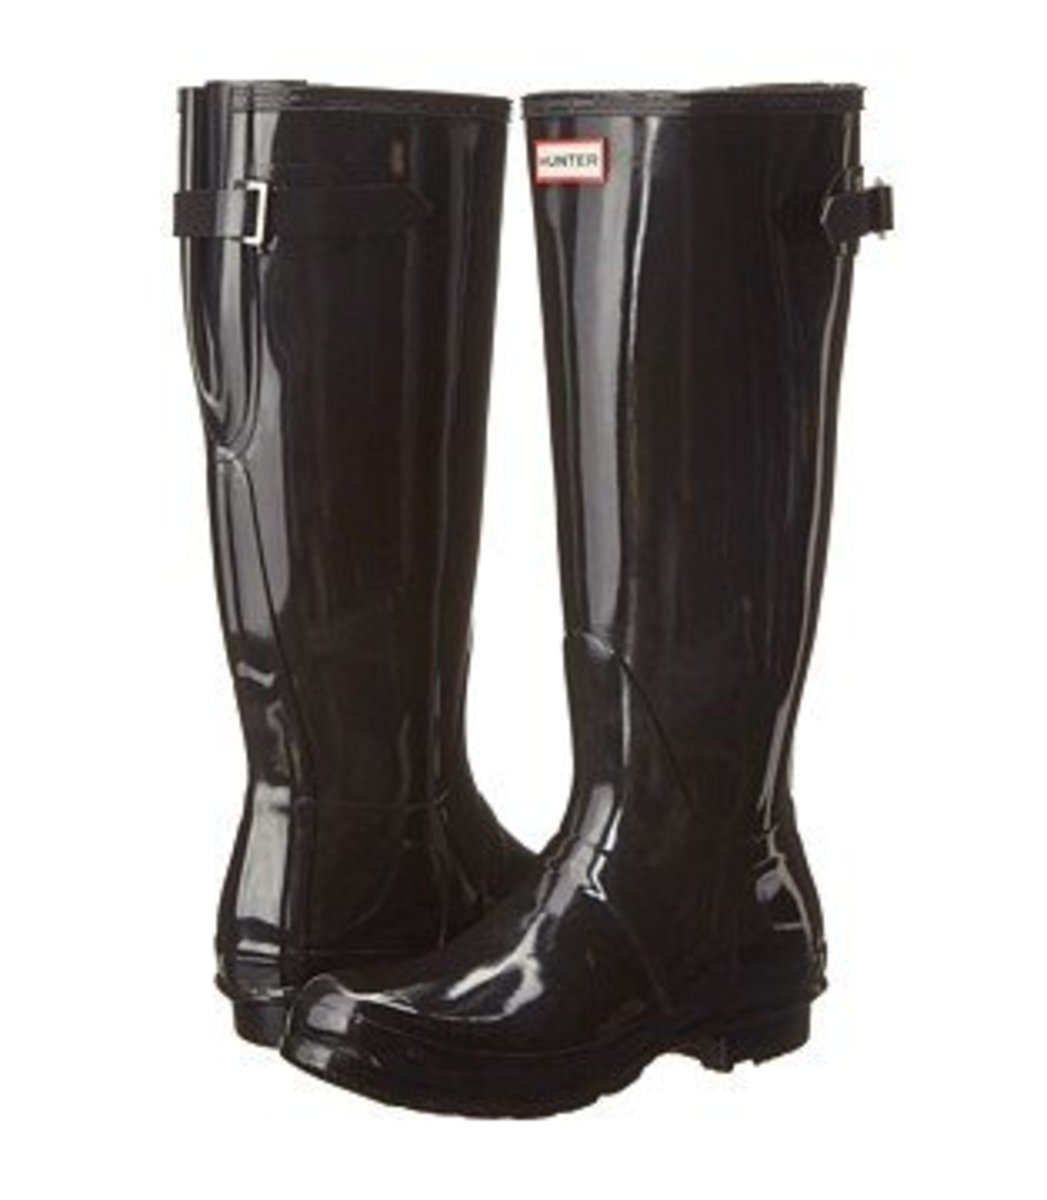 Hunter Original Back Adjustable Gloss - These have a calf Circumference: 16 1⁄4 in with an adjustable strap in back.